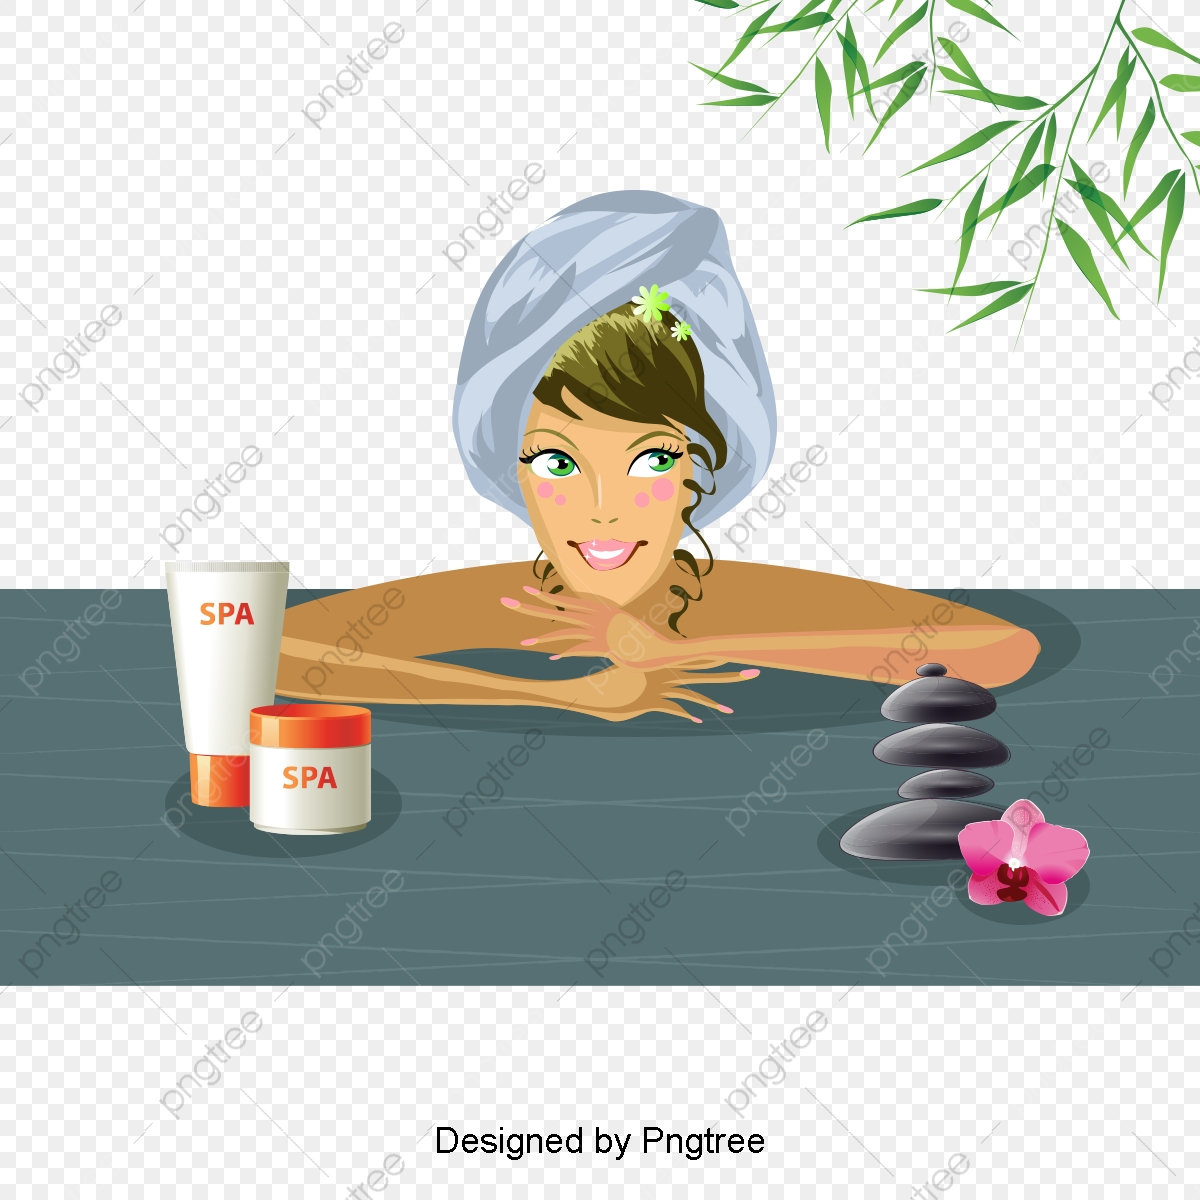 Beautiful Cartoon Lovely Hand Painted Beauty Beauty Skin Care Spa Health Aesthetic Cartoon Lovely Png Transparent Clipart Image And Psd File For Free Download